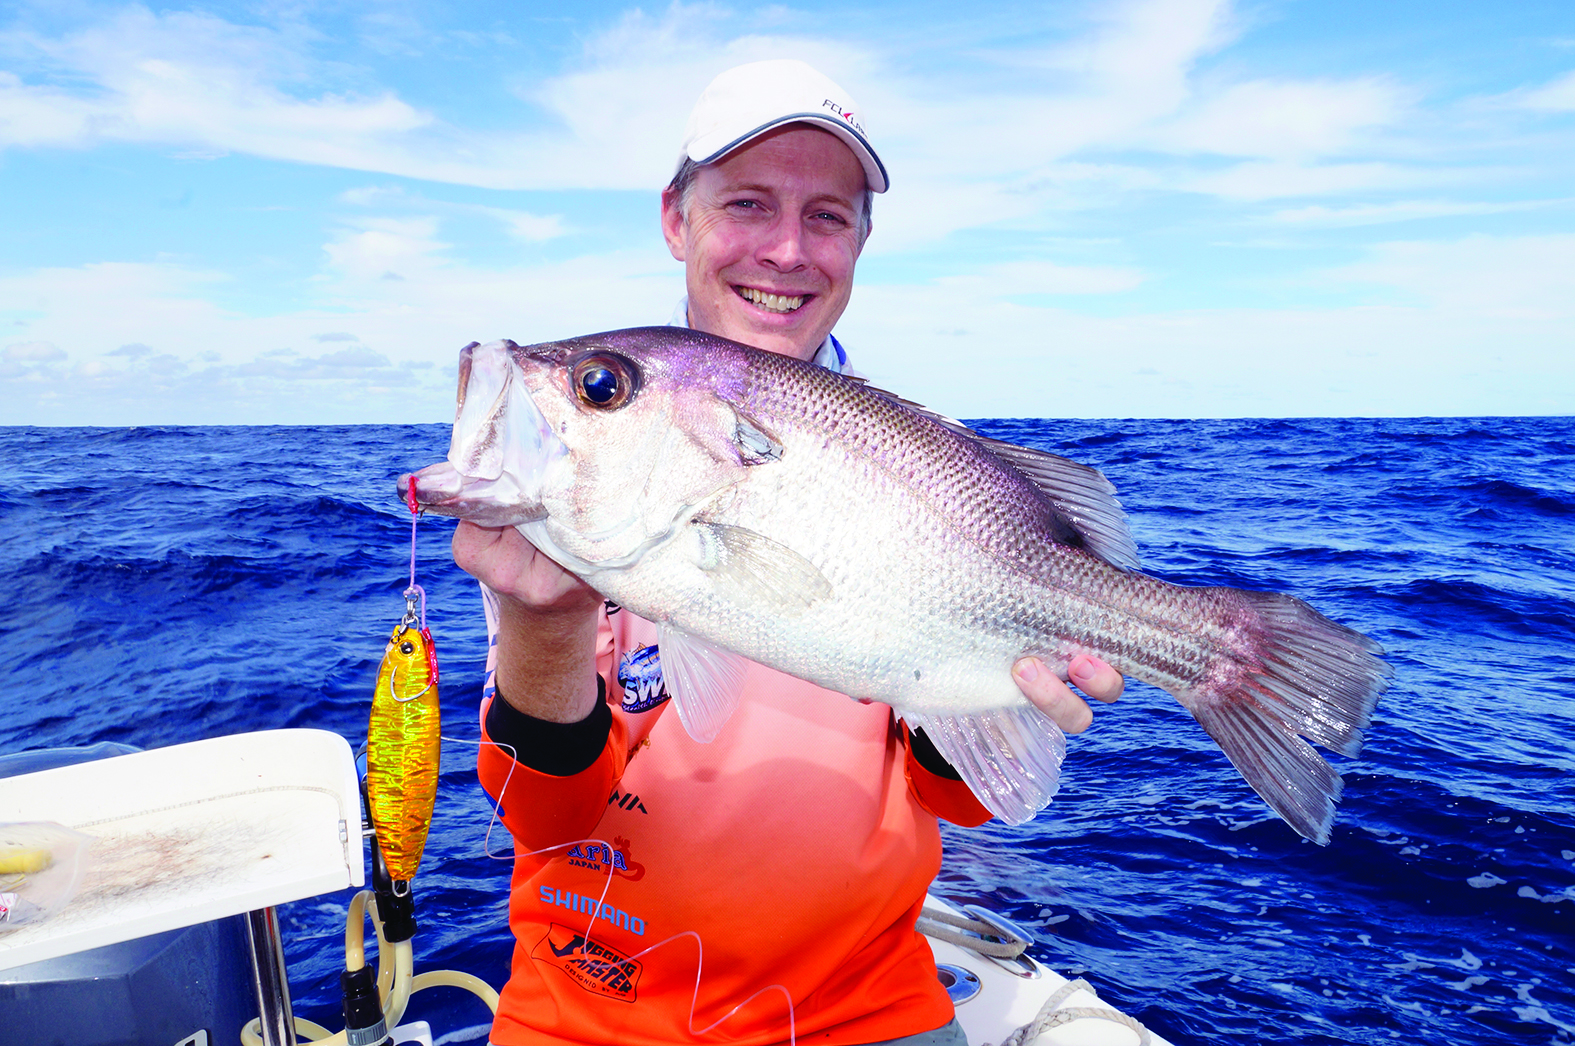 This 56cm pearl perch was Duncan O'Connell's best jig-caught pearl perch on the heavy oval-shaped jigs.